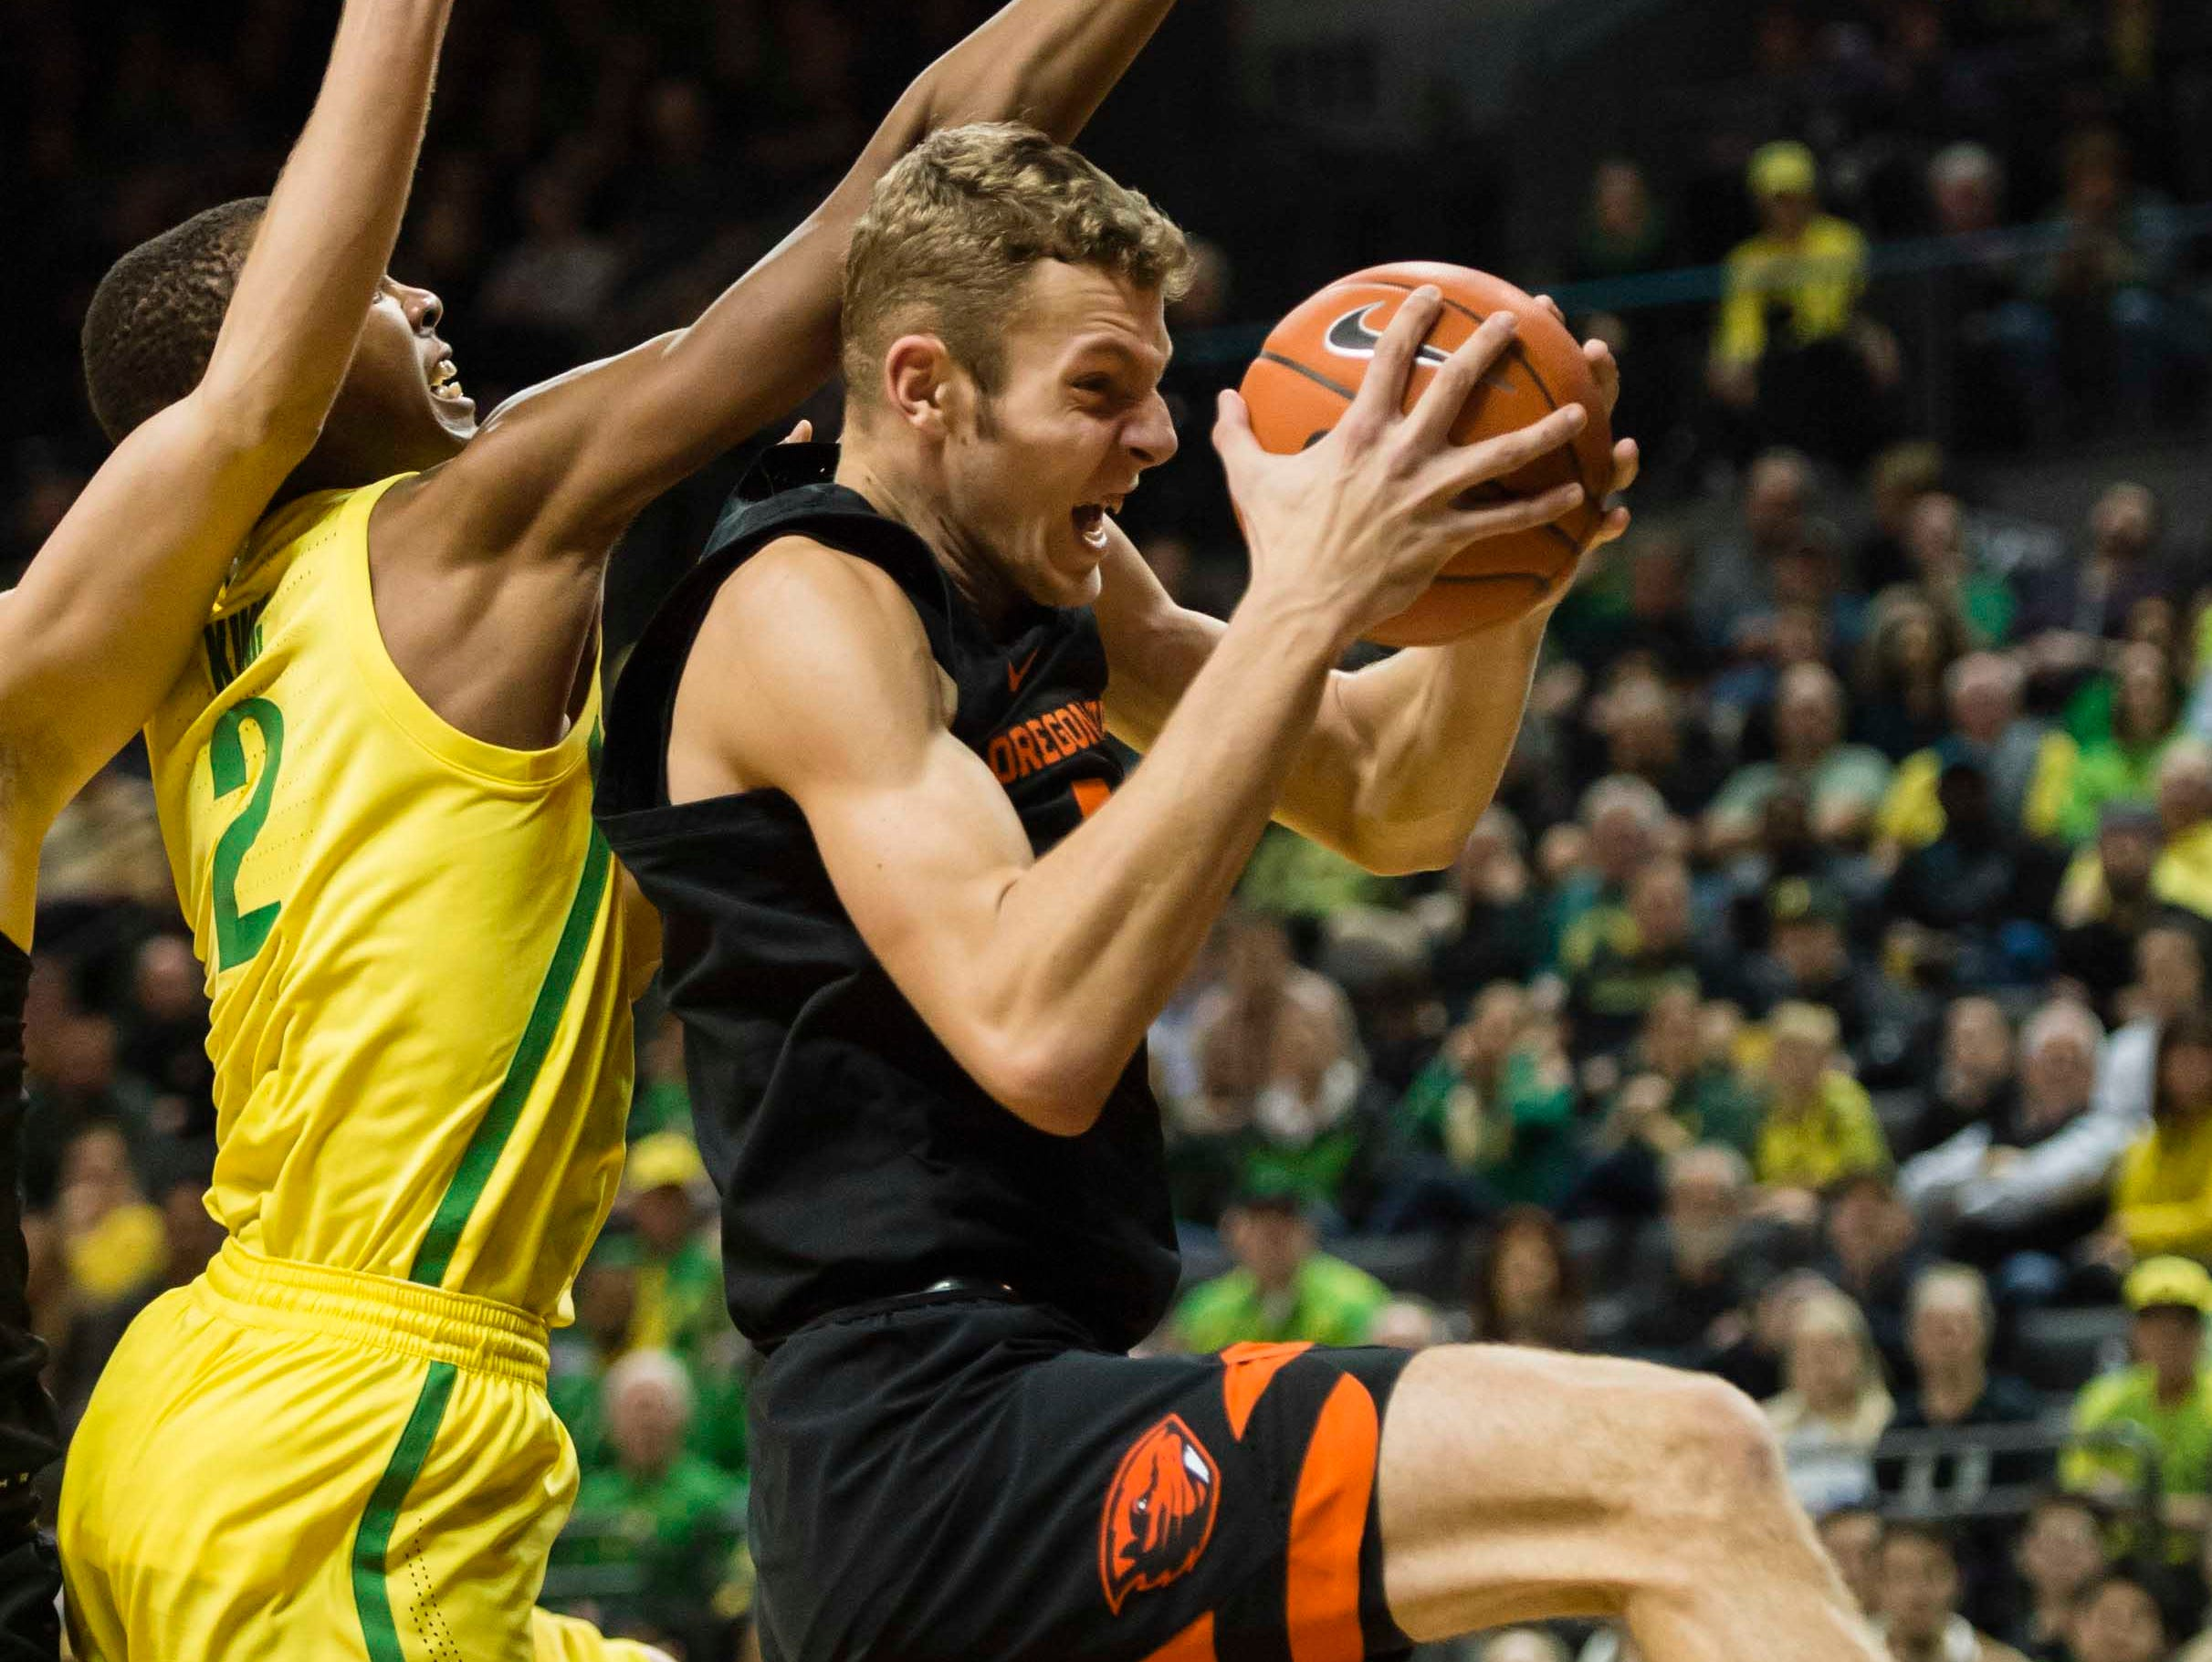 Jan 5, 2019; Eugene, OR, USA; Oregon State Beavers forward Kylor Kelley (24) grabs a rebound against Oregon Ducks forward Louis King (2) during the first half at Matthew Knight Arena. The Beavers beat the Ducks 77-72. Mandatory Credit: Troy Wayrynen-USA TODAY Sports